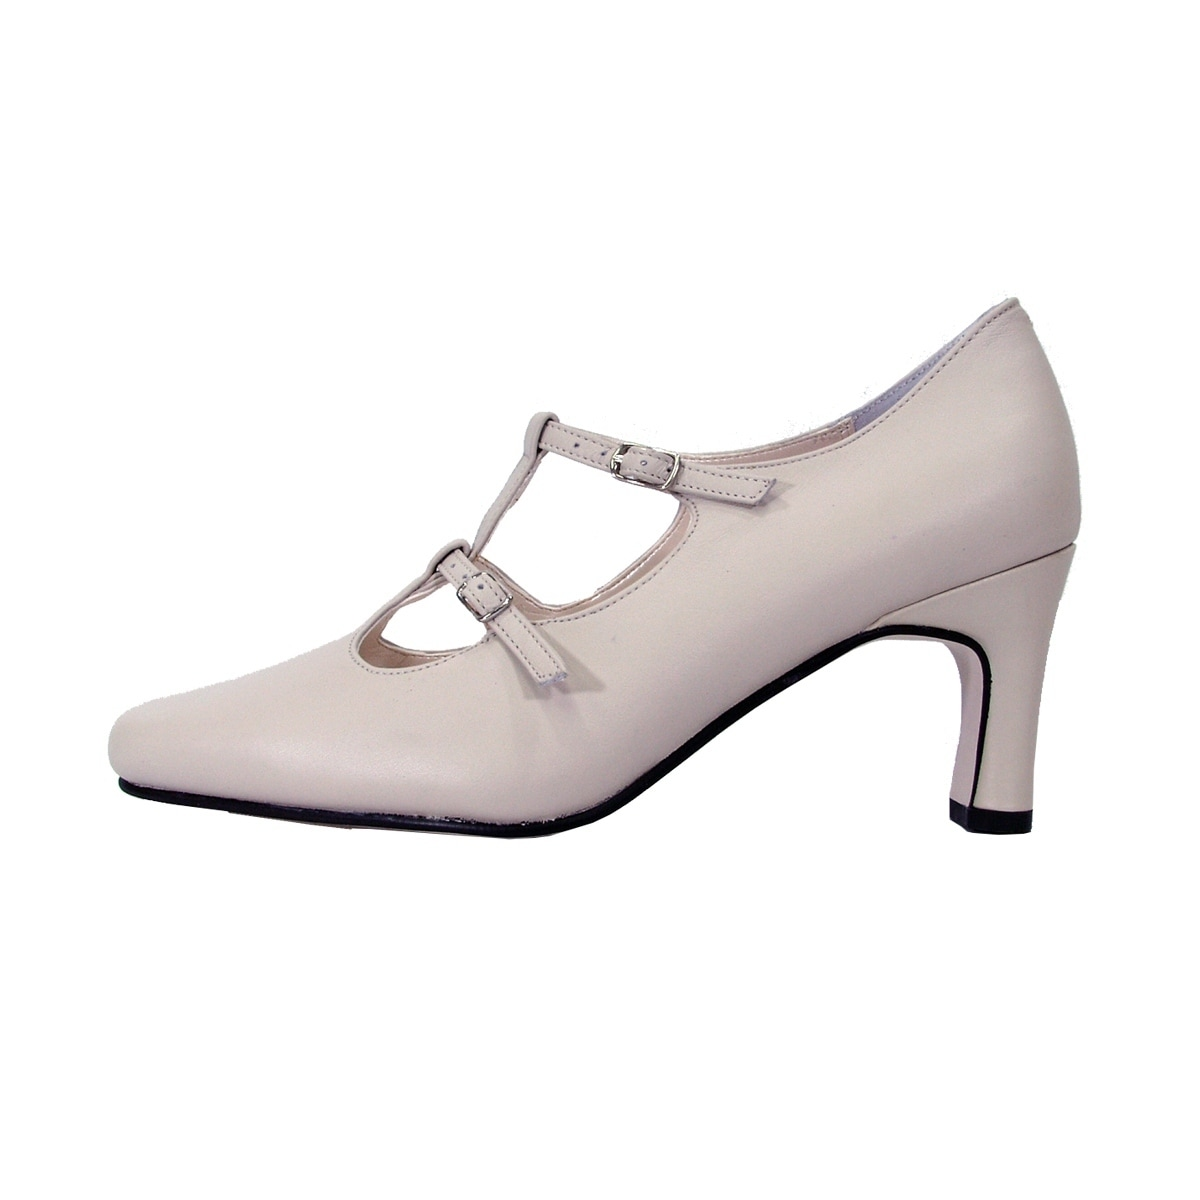 04f05ebfbb9c Shop PEERAGE Helena Women Extra Wide Width Leather Double Buckles Pumps -  Ships To Canada - Overstock - 19525411